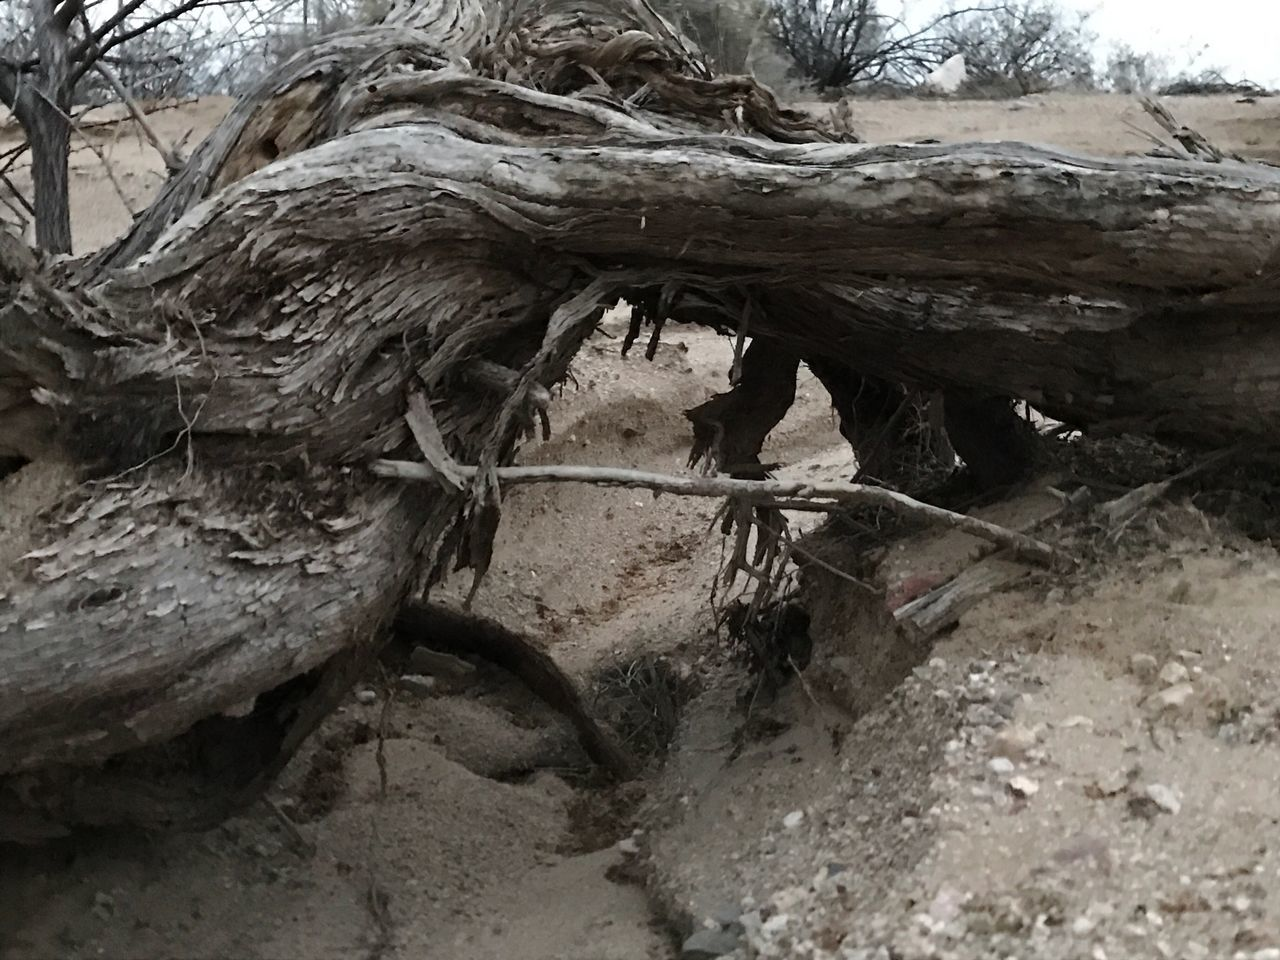 no people, tree, day, nature, outdoors, dead tree, close-up, animal themes